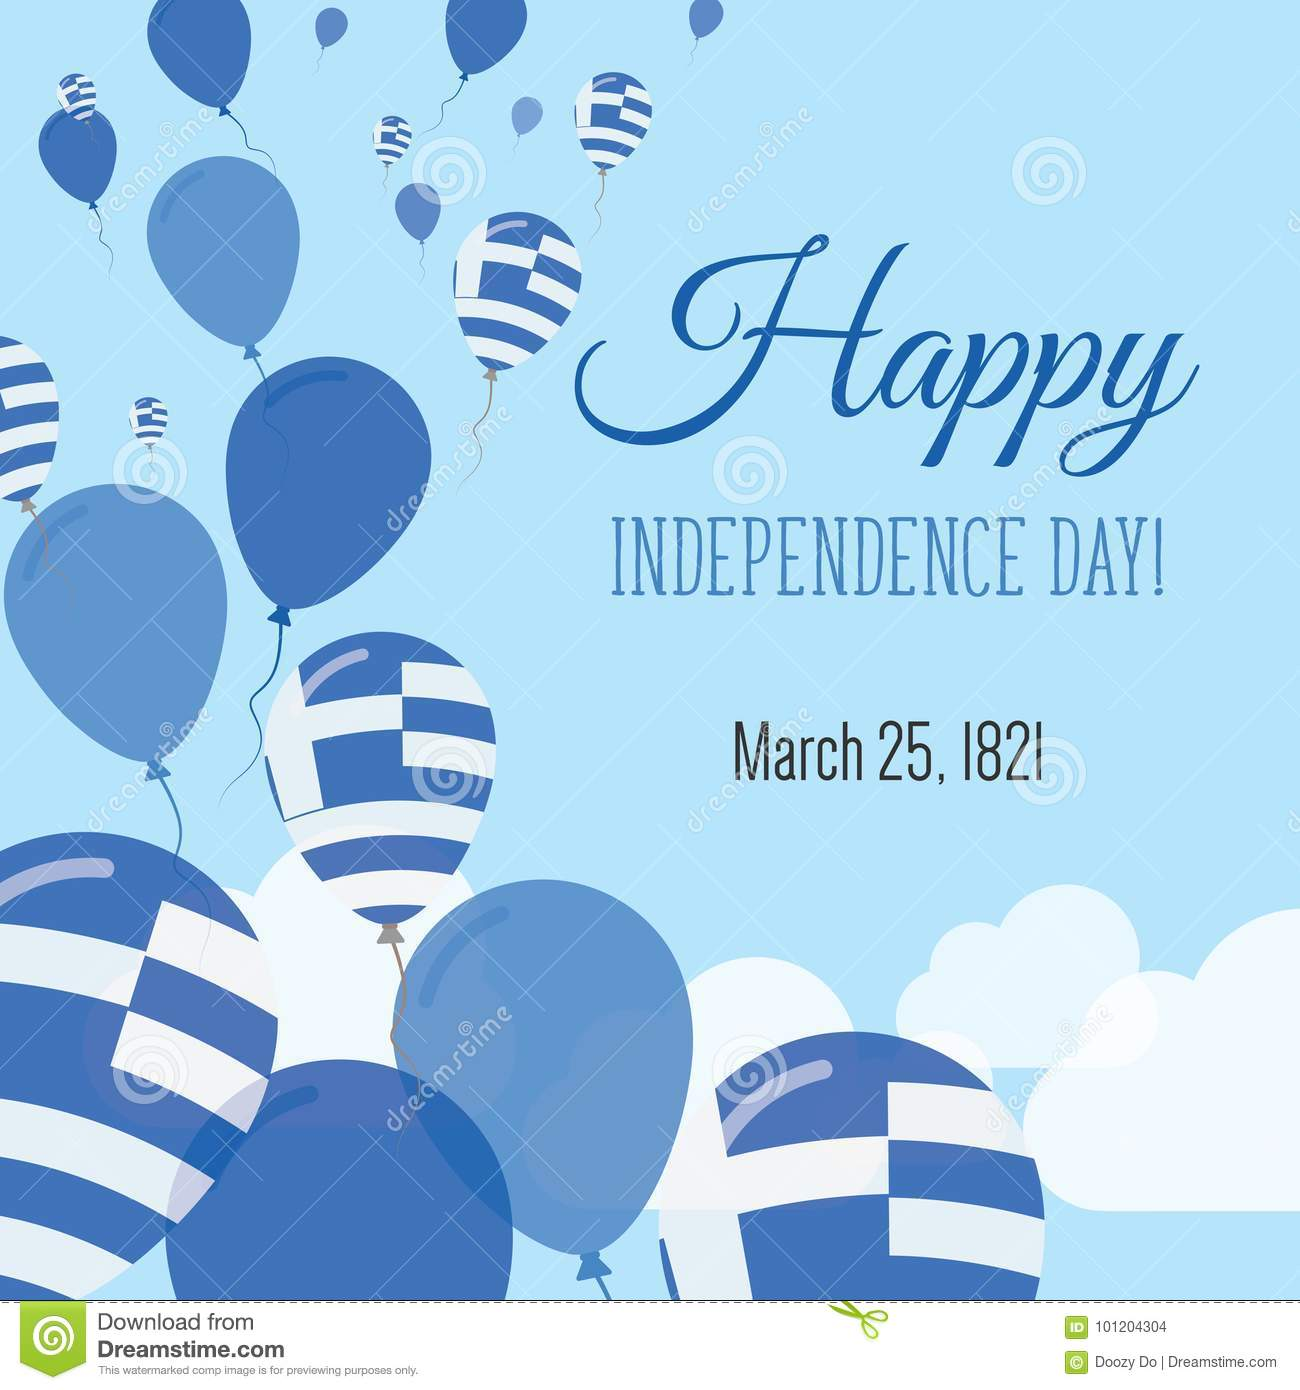 Independence day flat greeting card stock vector illustration of independence day flat greeting card greece independence day greek flag balloons patriotic poster happy national day vector illustration m4hsunfo